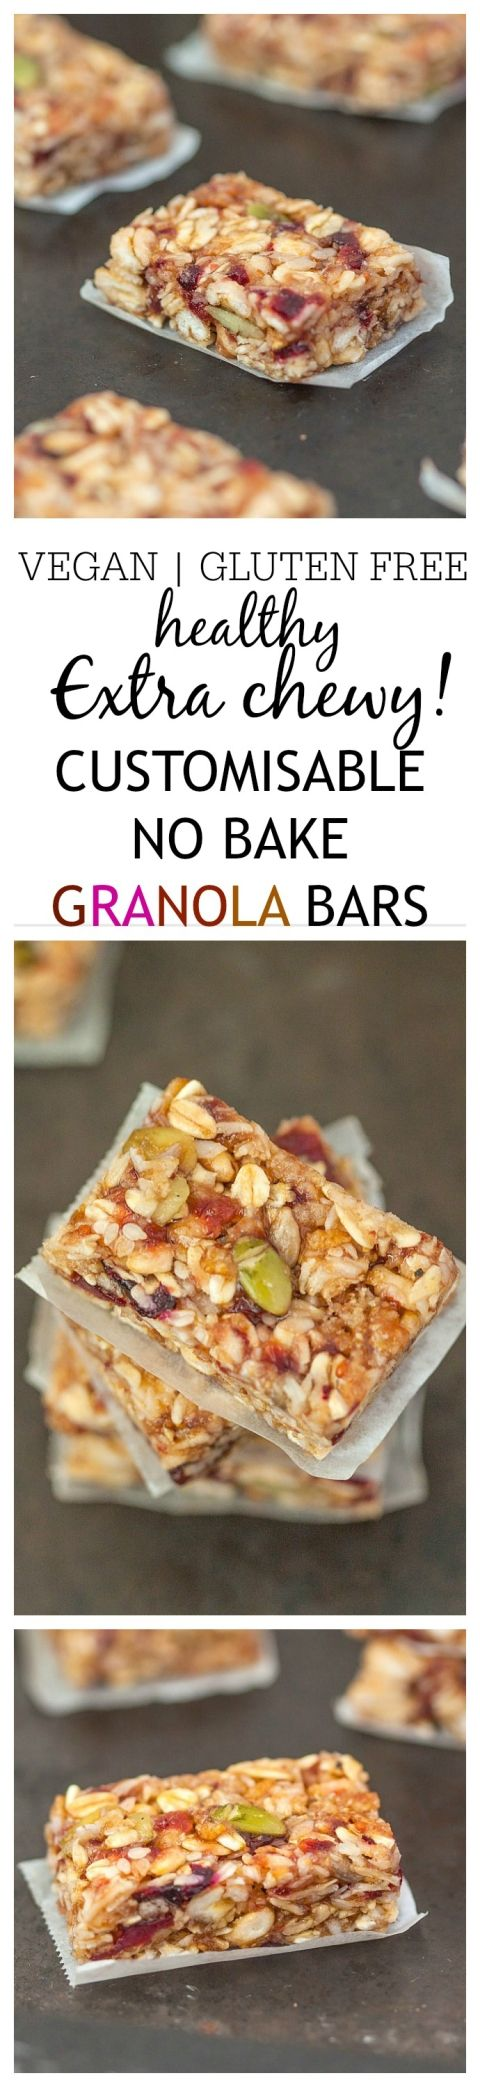 Healthy {EXTRA CHEWY!} Customisable No Bake Granola Bars- Hands down, the most CHEWY and delicious granola bar you'll ever make which requires NO baking! Vegan, gluten free, dairy free and refined sugar free, they are perfectly customisable- A great grab and go snack or breakfast! @thebigmansworld - thebigmansworld.com